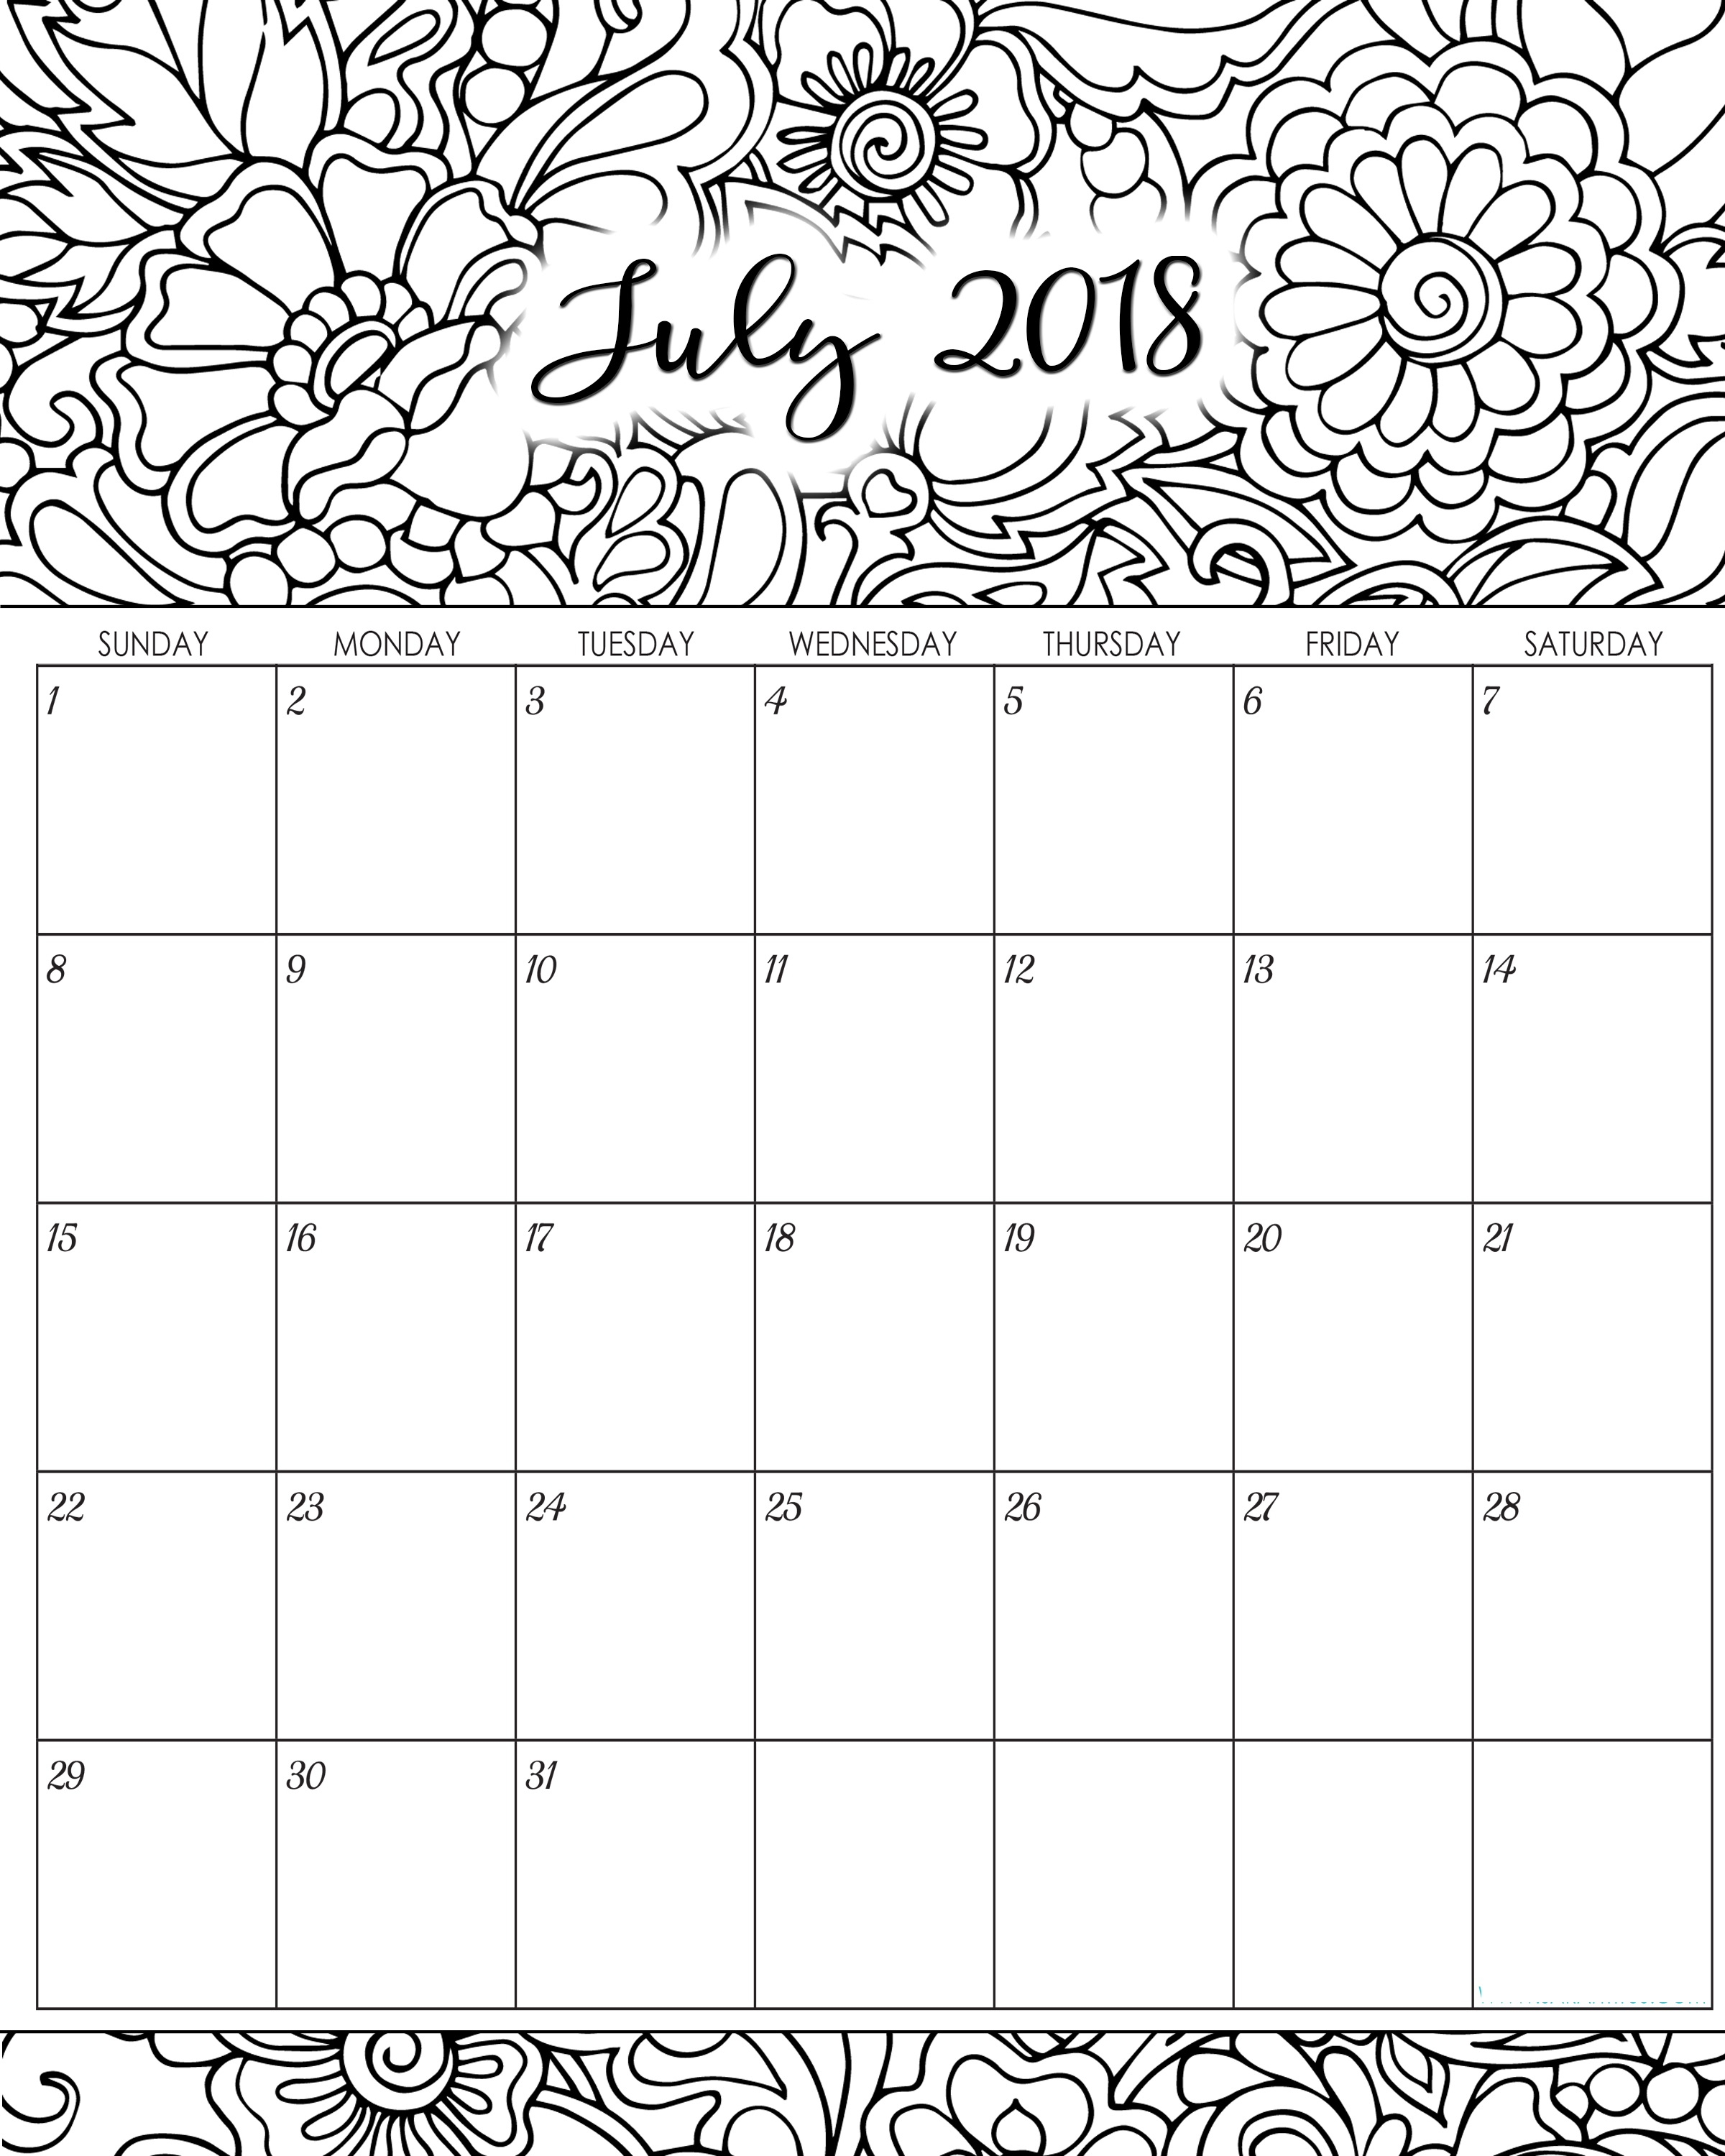 Download Calendar of July 2018